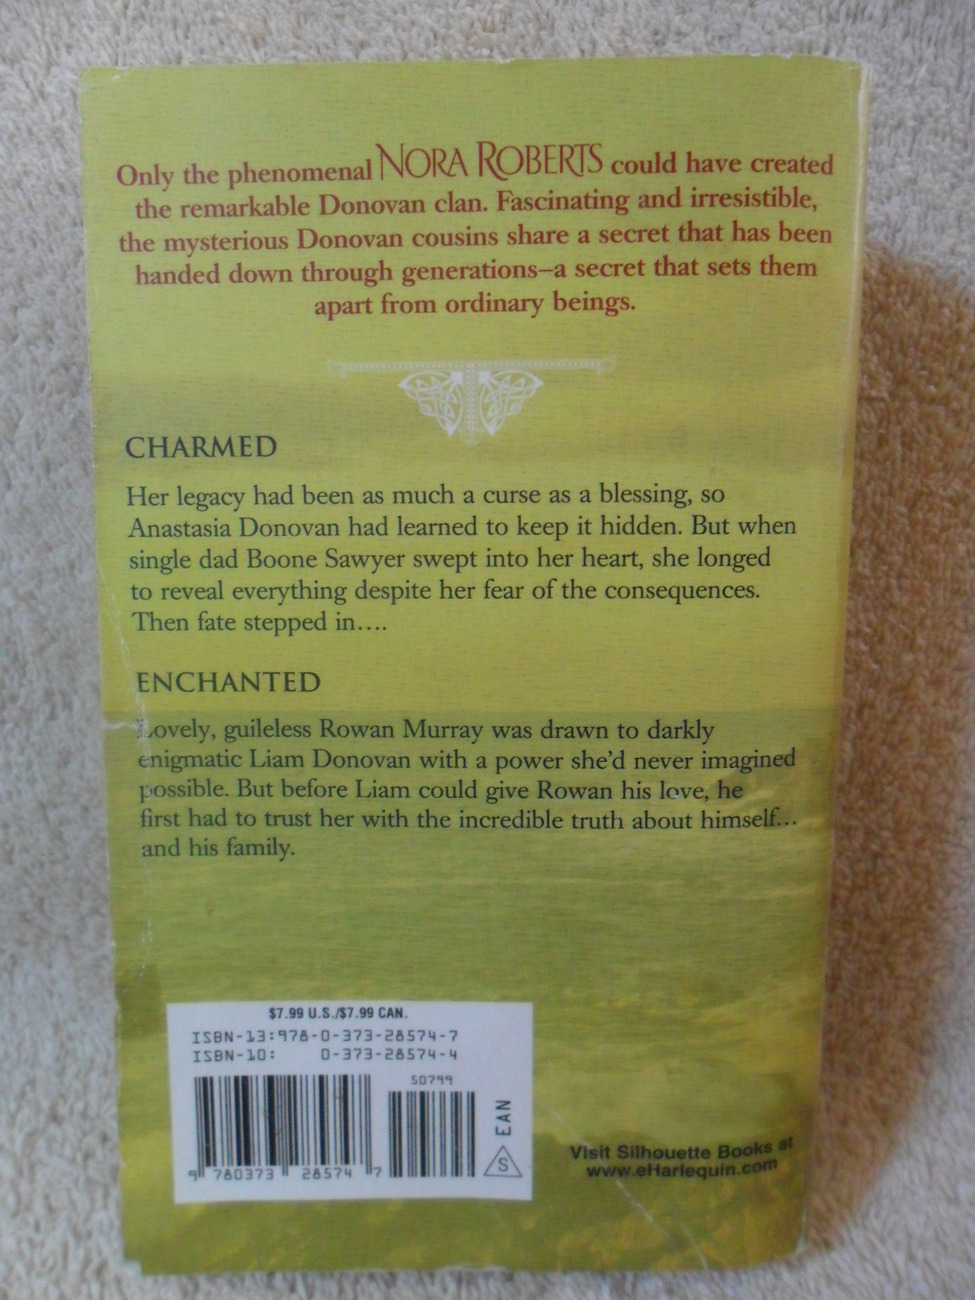 CHARMED & ENCHANTED 2 Classic Donovan Stories by NORA ROBERTS Nice Paperback